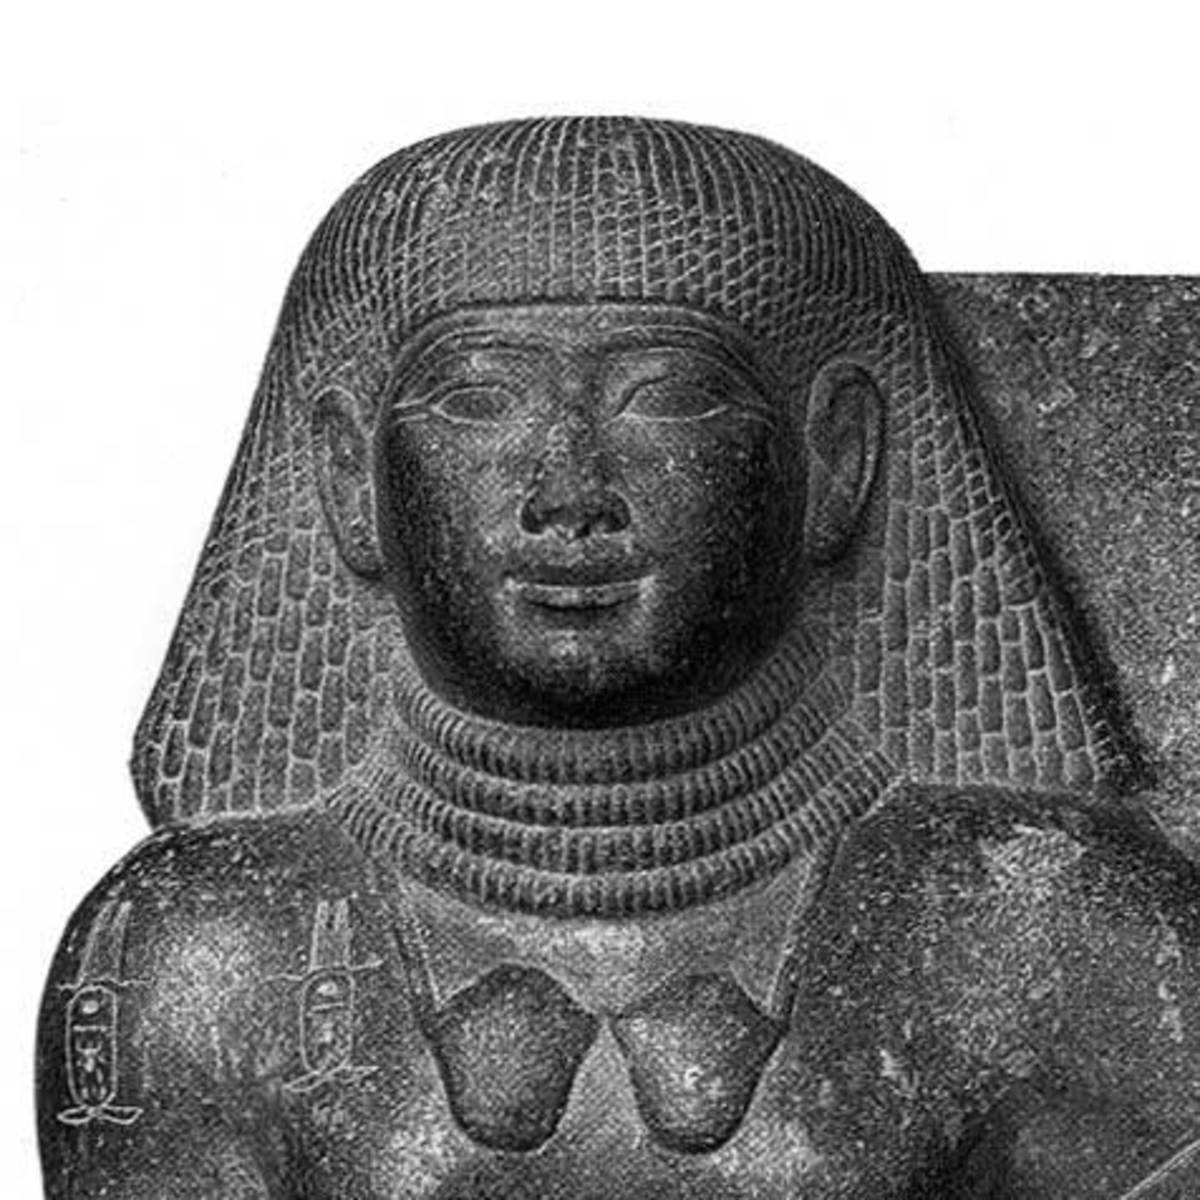 Bust of Thutmosis IV